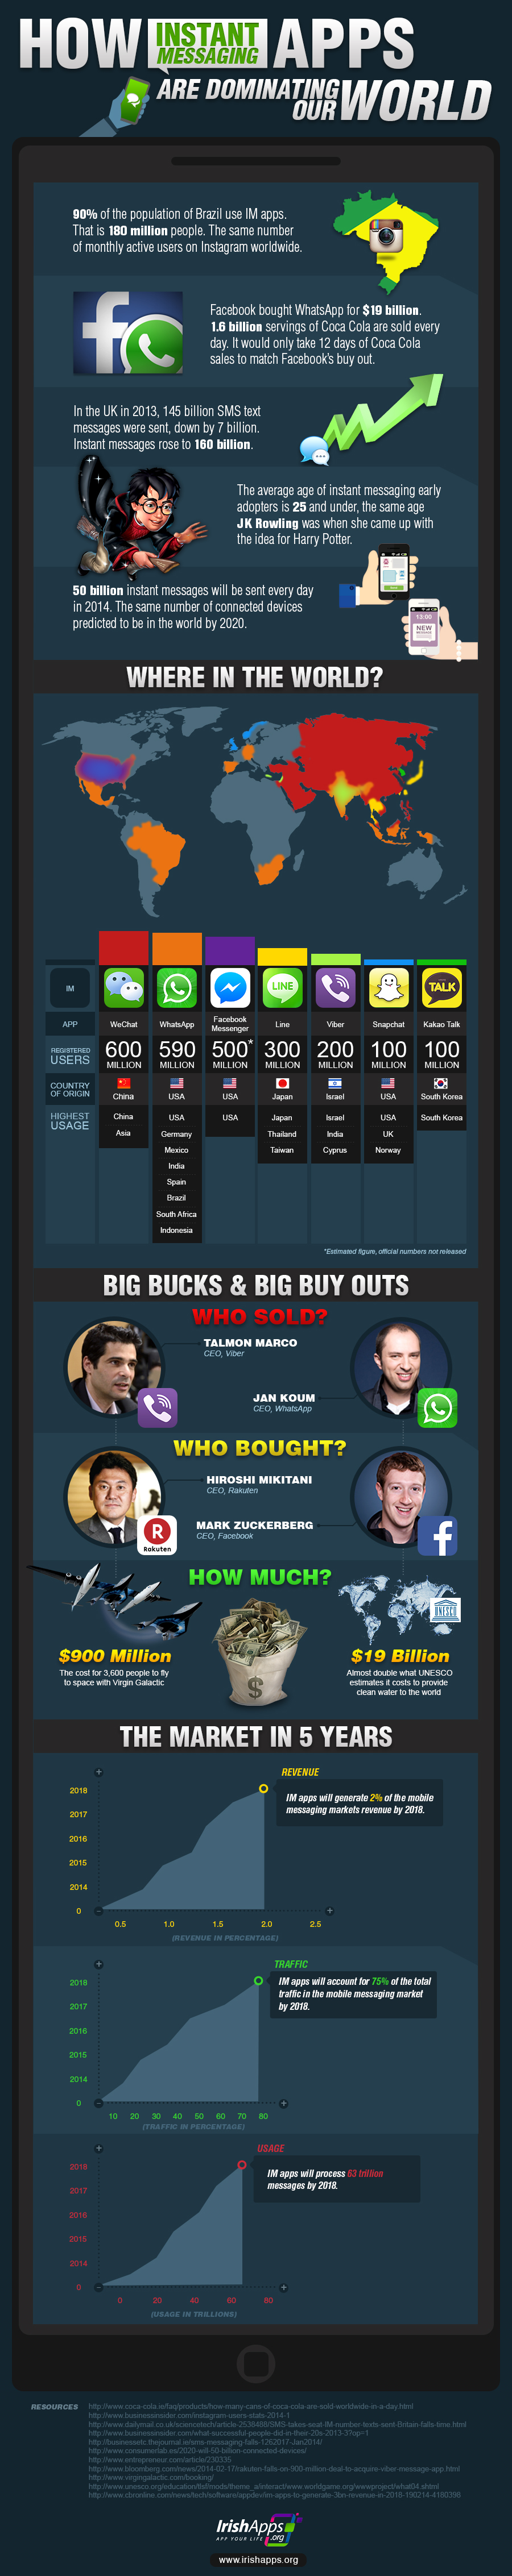 How Instant Messaging Apps Are Dominating Our World? An Infograph.